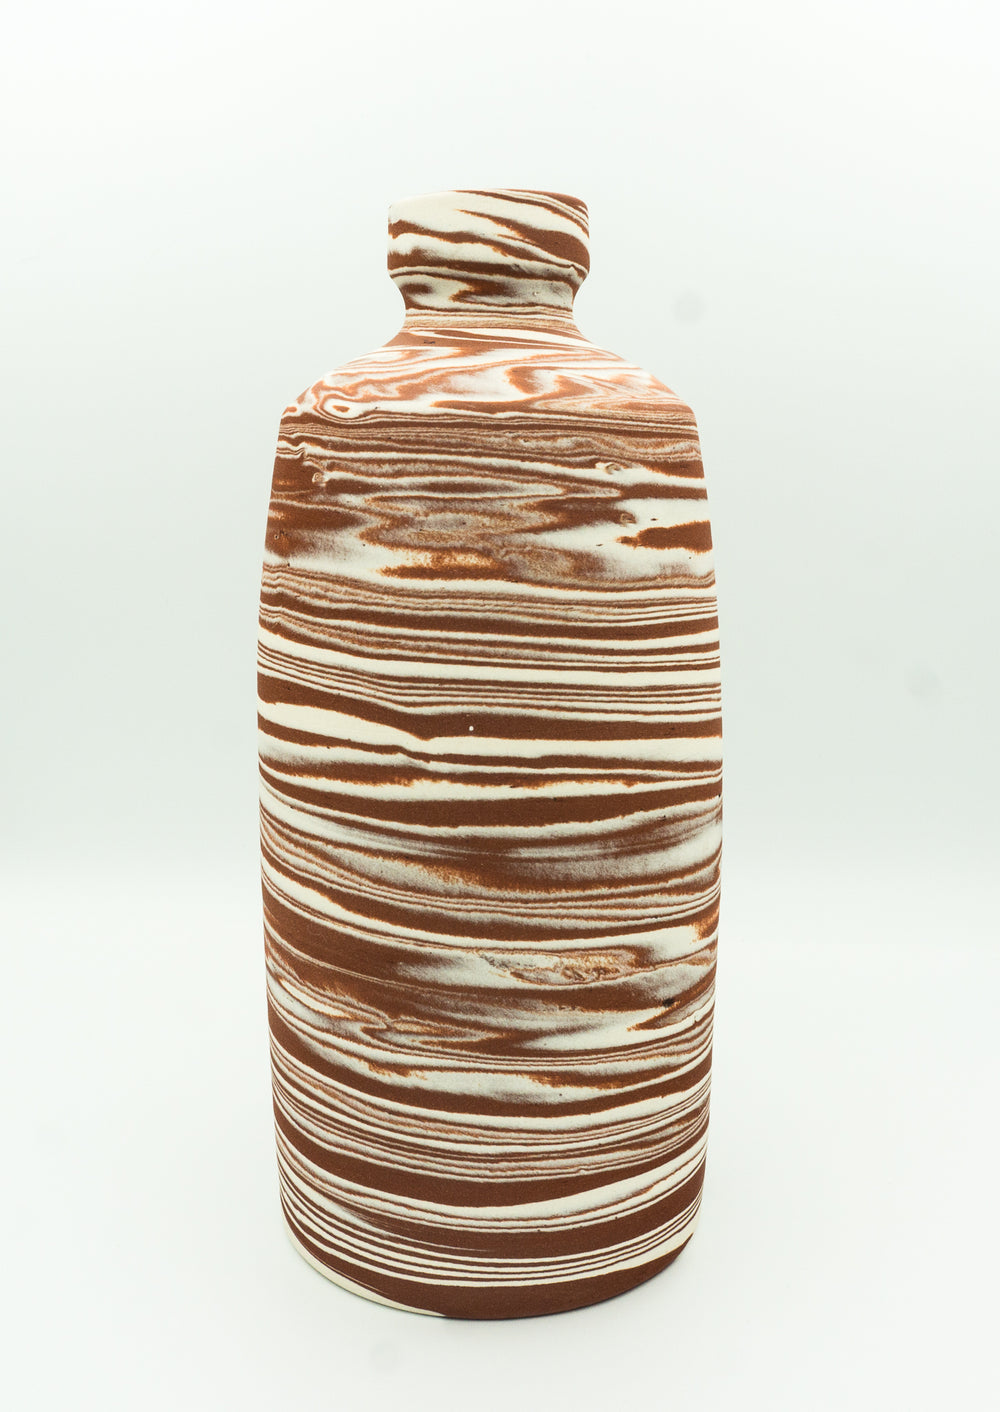 Agateware Tabletop  Bottle Vase in  Red Iron Oxide Brown & White